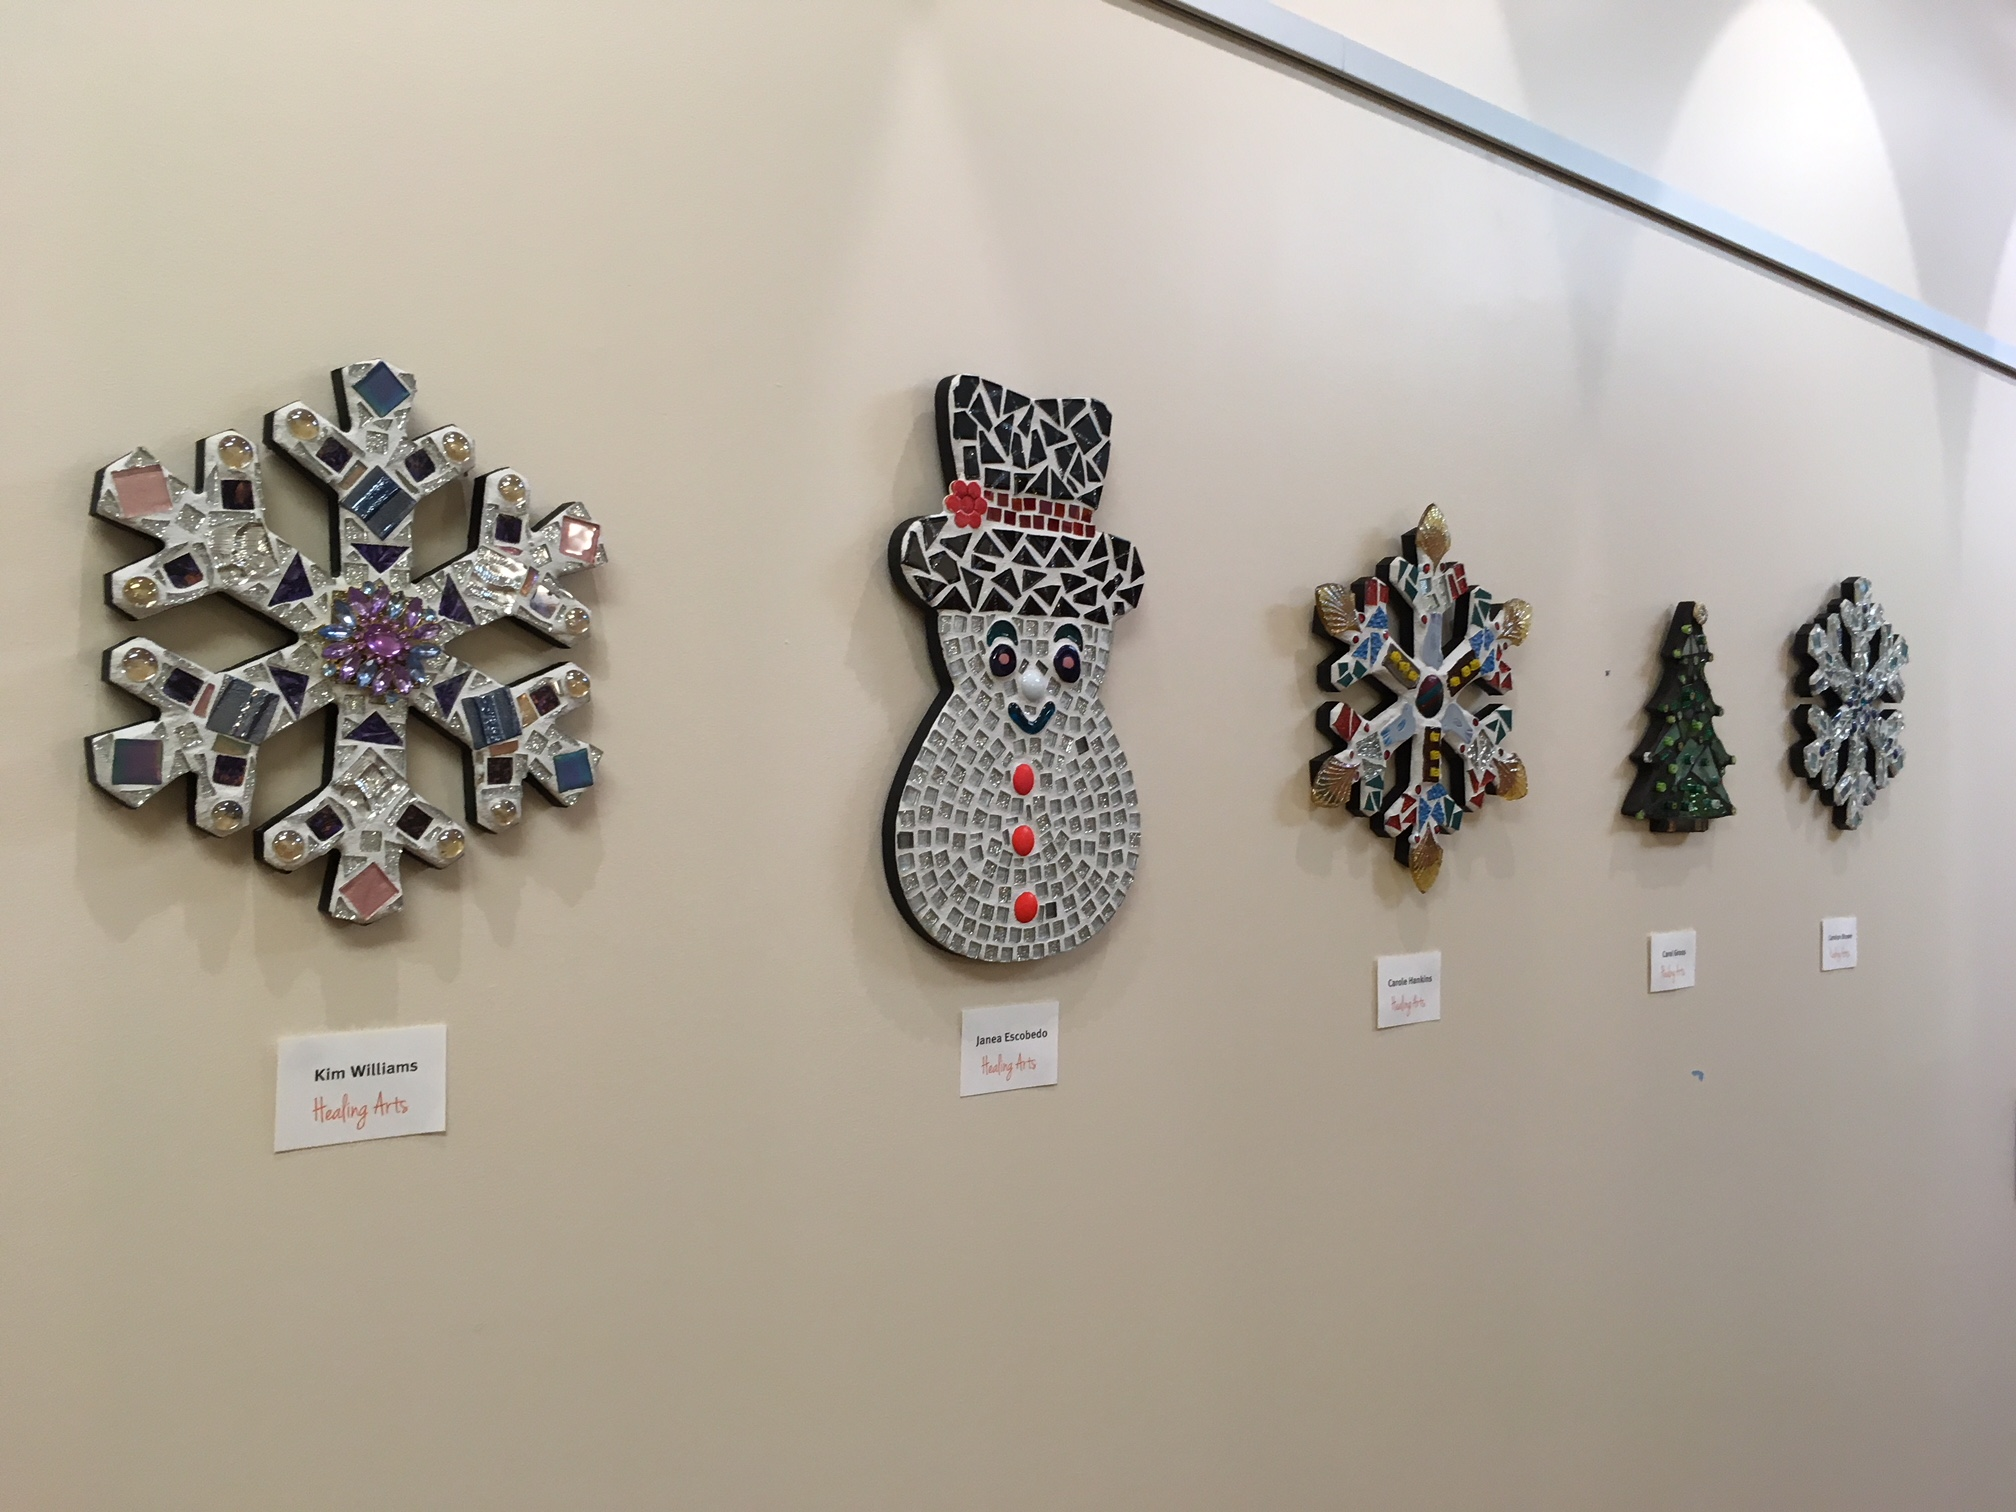 Janets Sacks exhibit at Parker Adventist Hospital